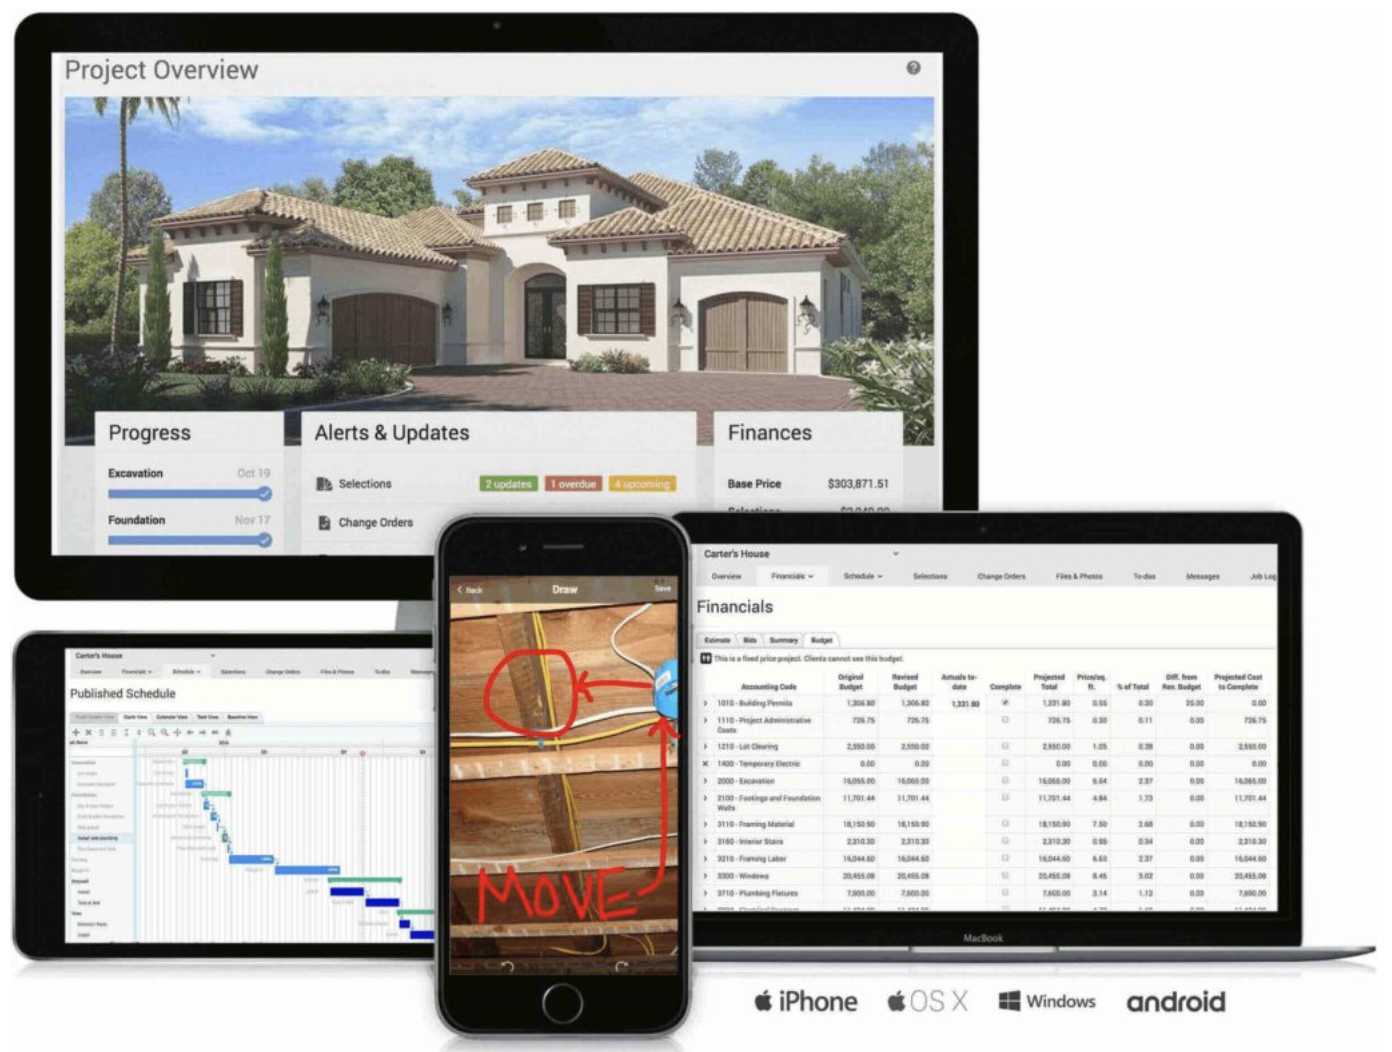 Project Roadmap - We take the guesswork out of the building and remodeling process. Through our custom project management system, you are able to view the schedule, job log, progress photos, financials and more! We prioritize clear communication while working together through the construction process.